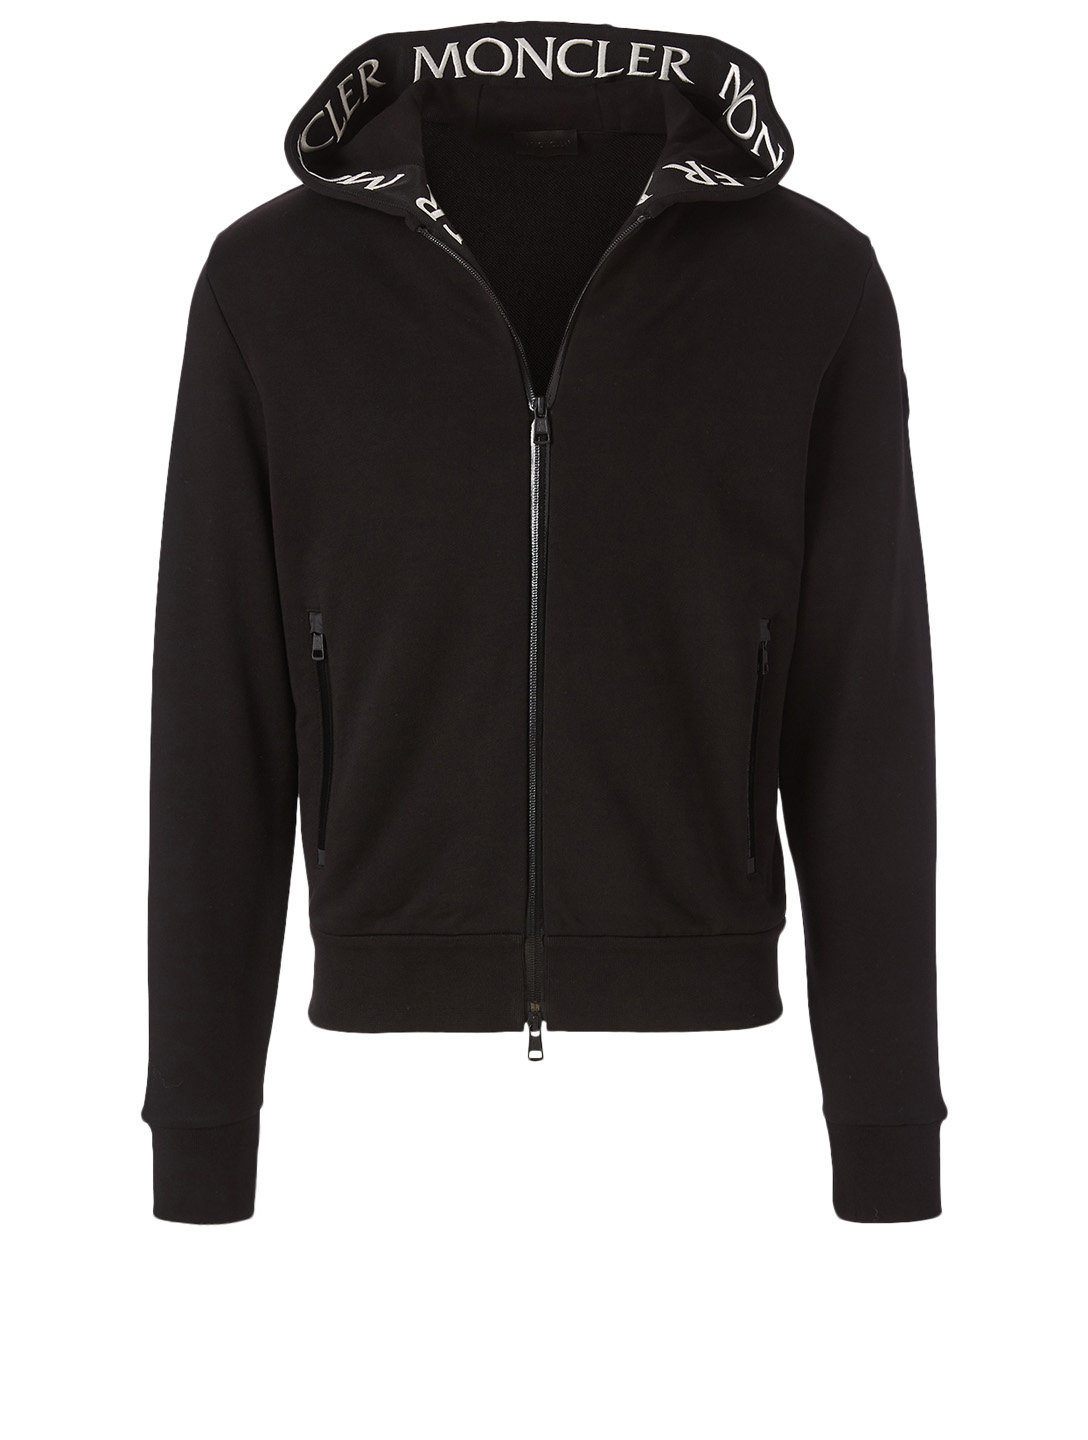 MONCLER Zip Hoodie With Grosgrain Logo Men's Black